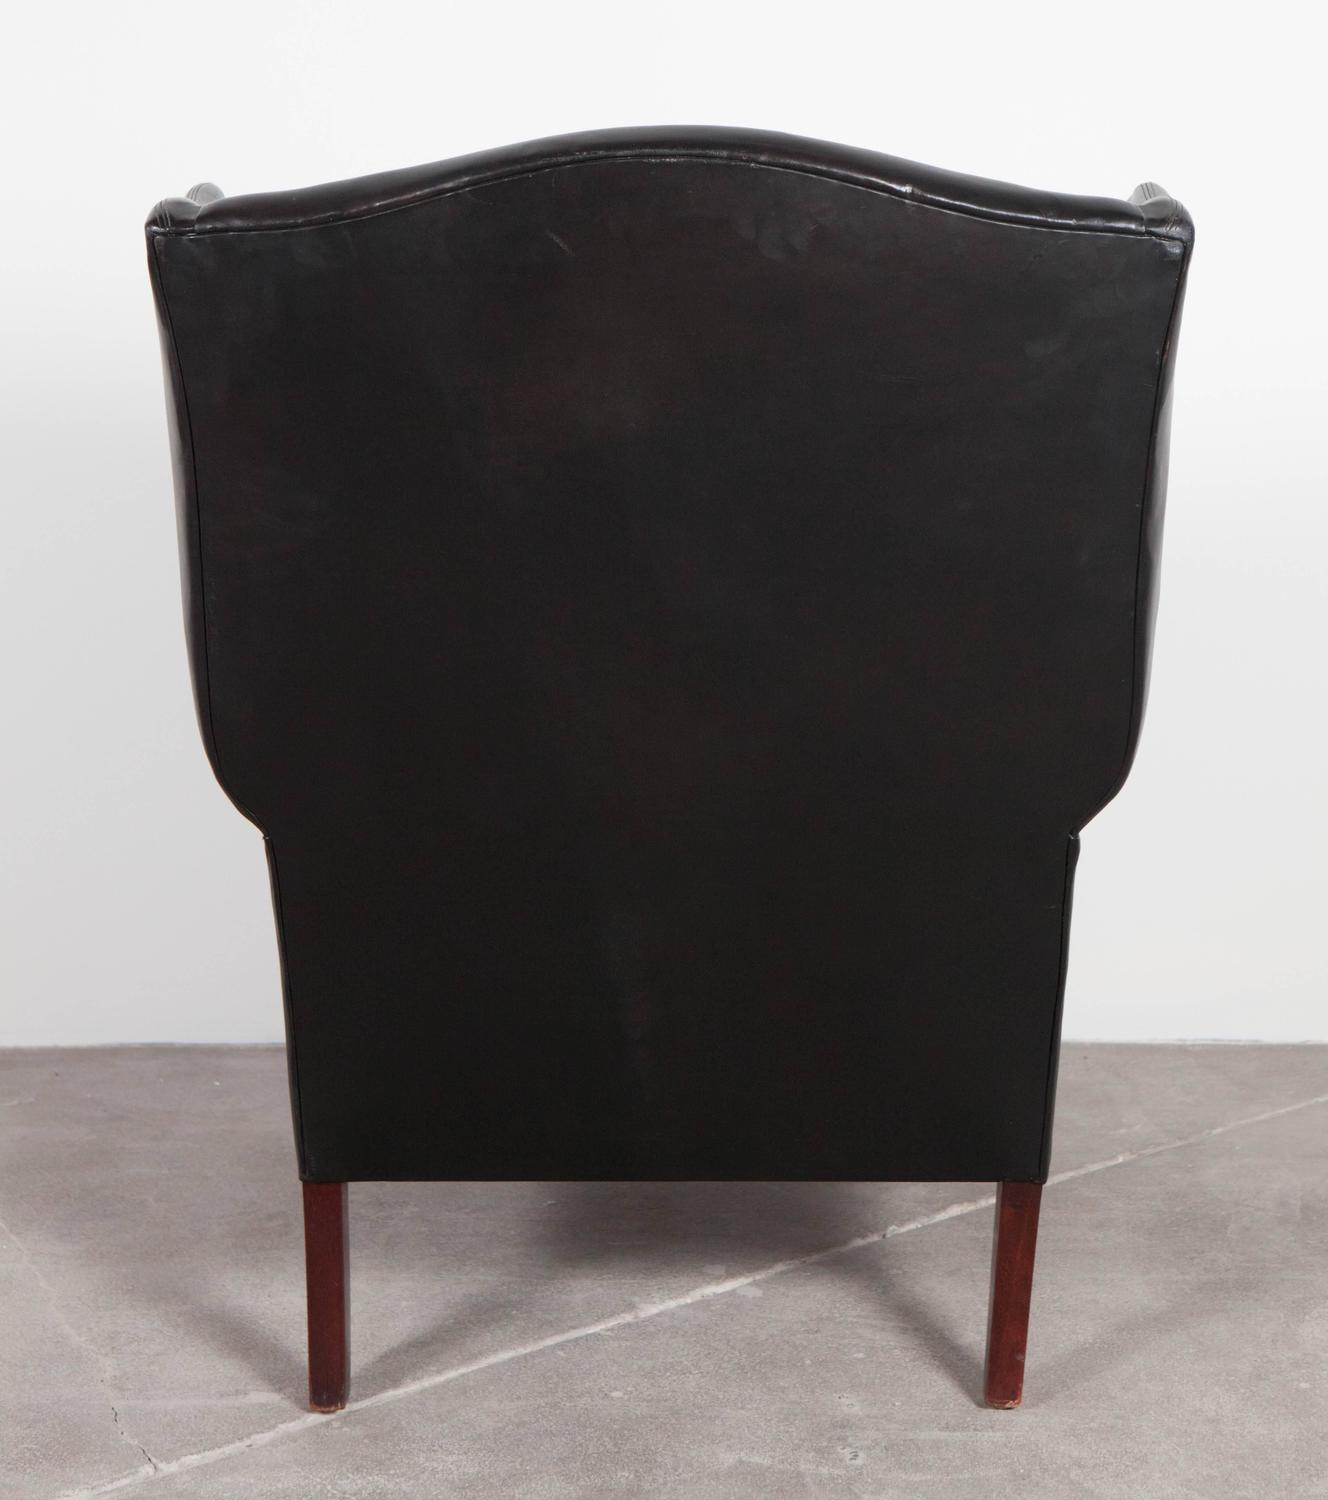 Pair of hans wegner lounge chairs at 1stdibs - Black Leather Curved Arm Wing Back Club Chair For Sale At